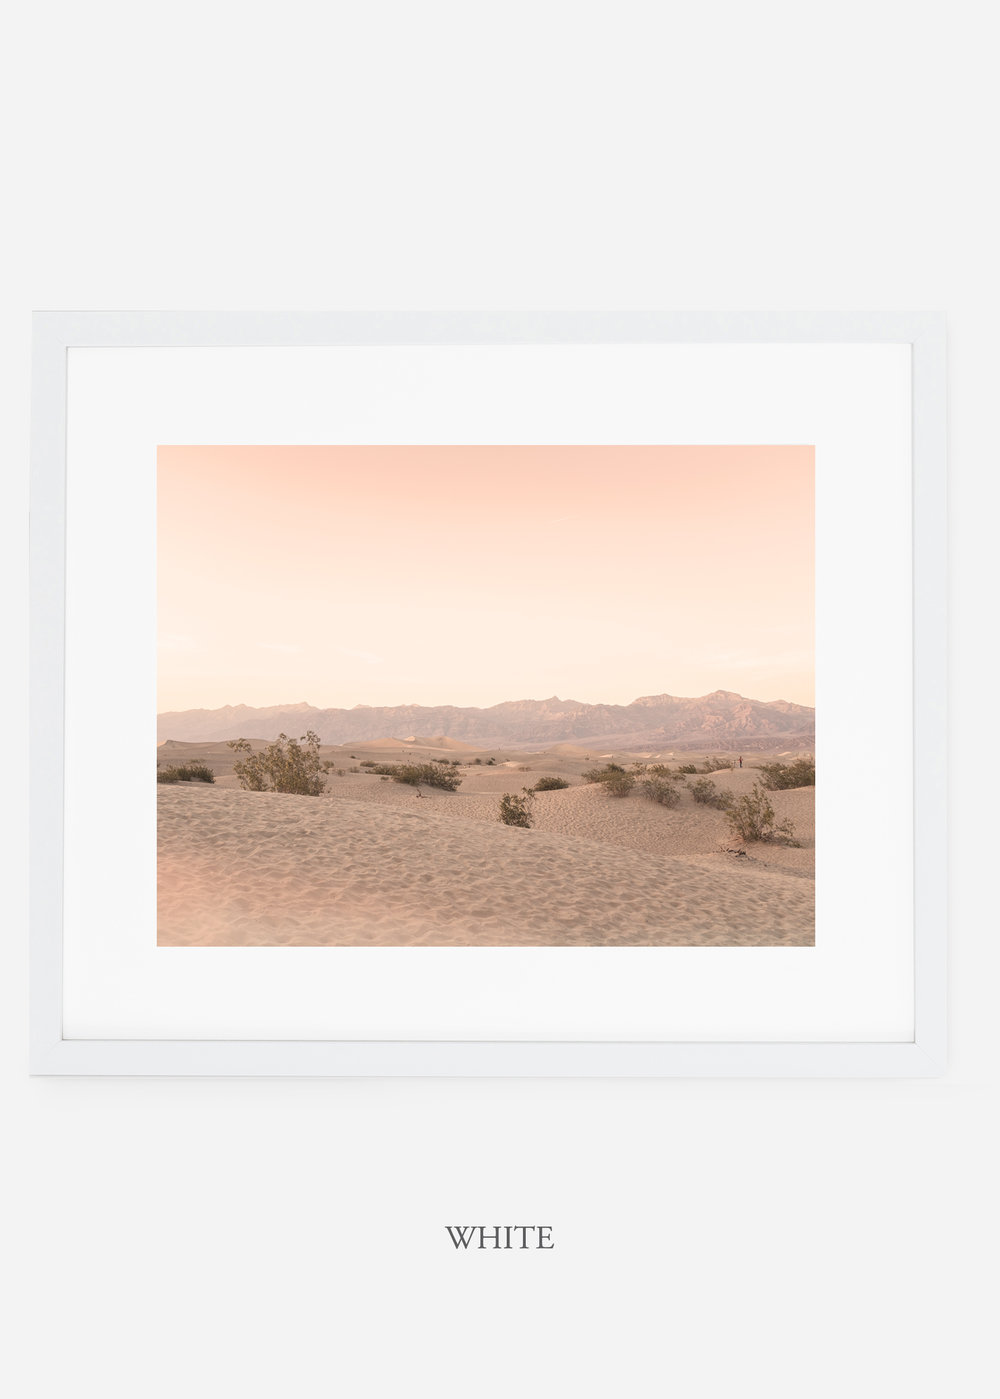 wildercalifornia_whiteframe_deathvalley_4_minimal_cactus_art_interiordesign_blackandwhite.jpg